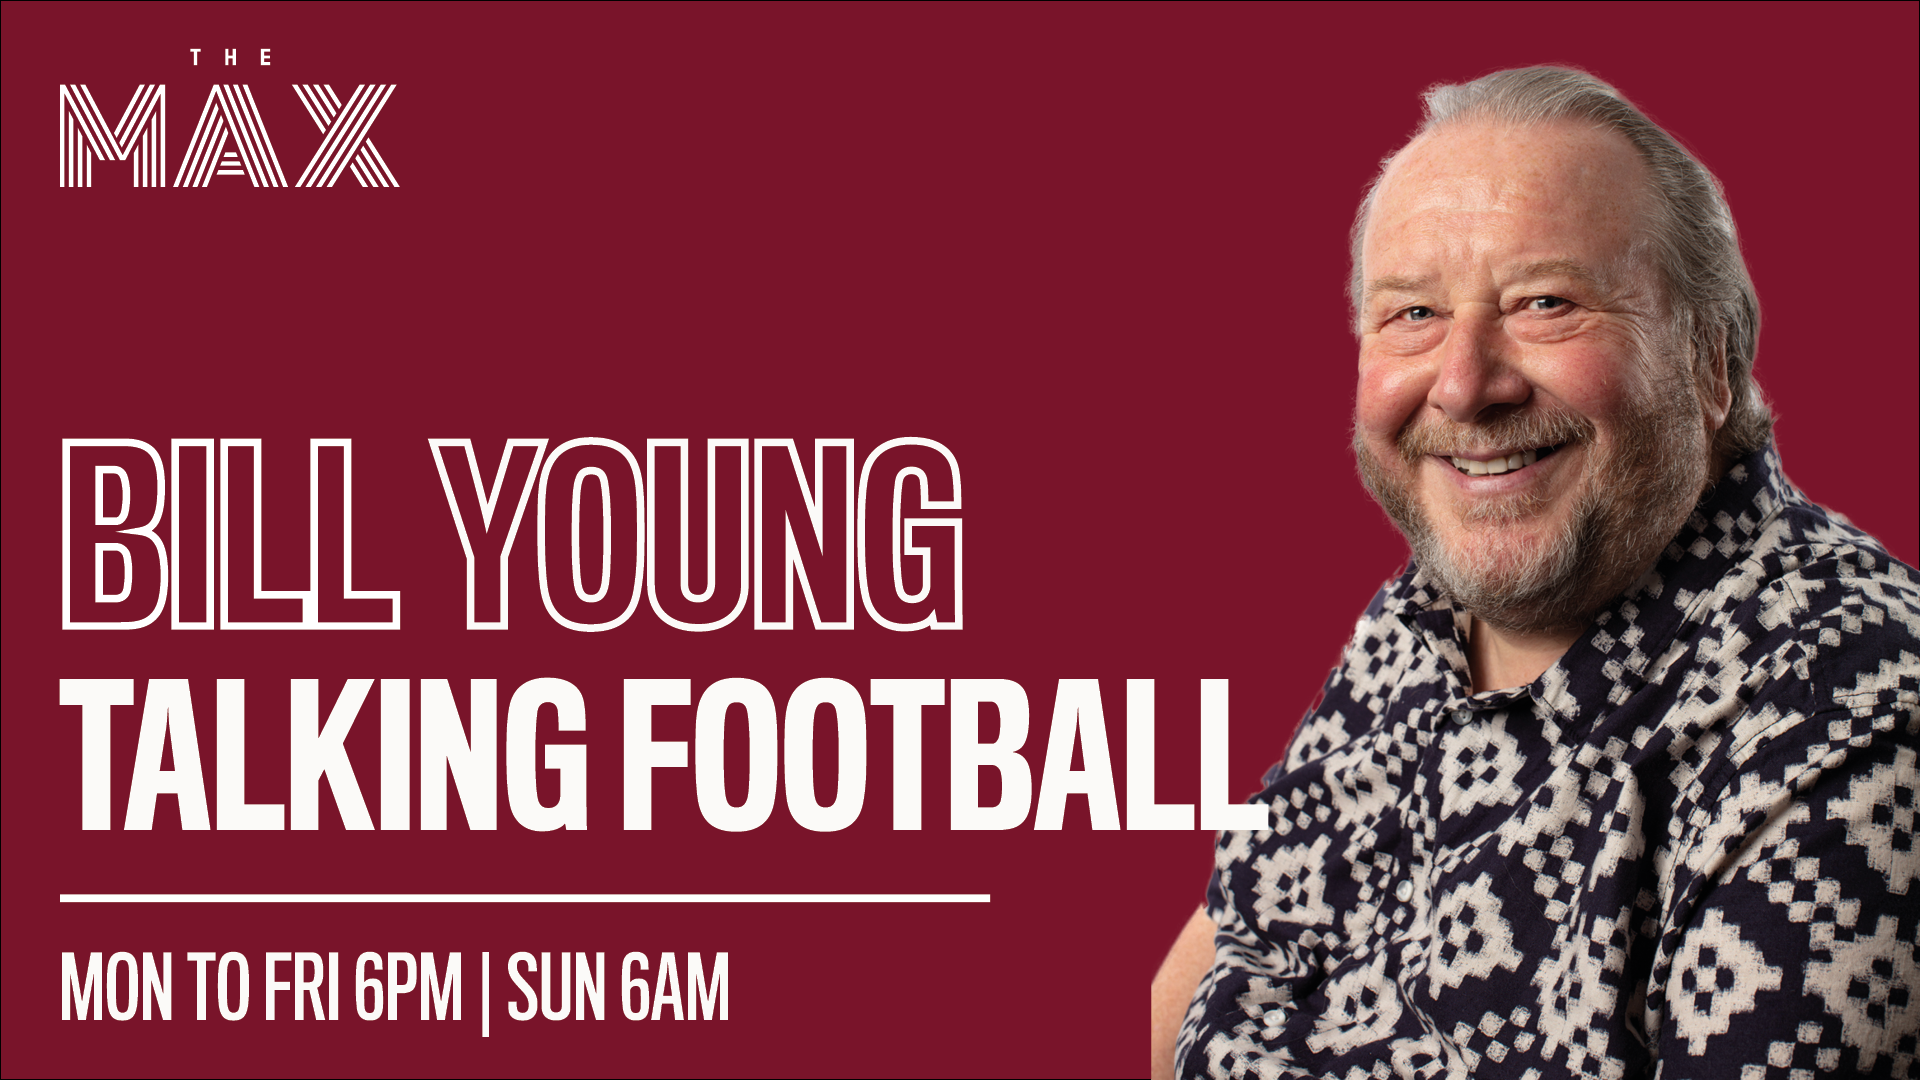 Talking Football with Bill Young - Tuesday 23 February